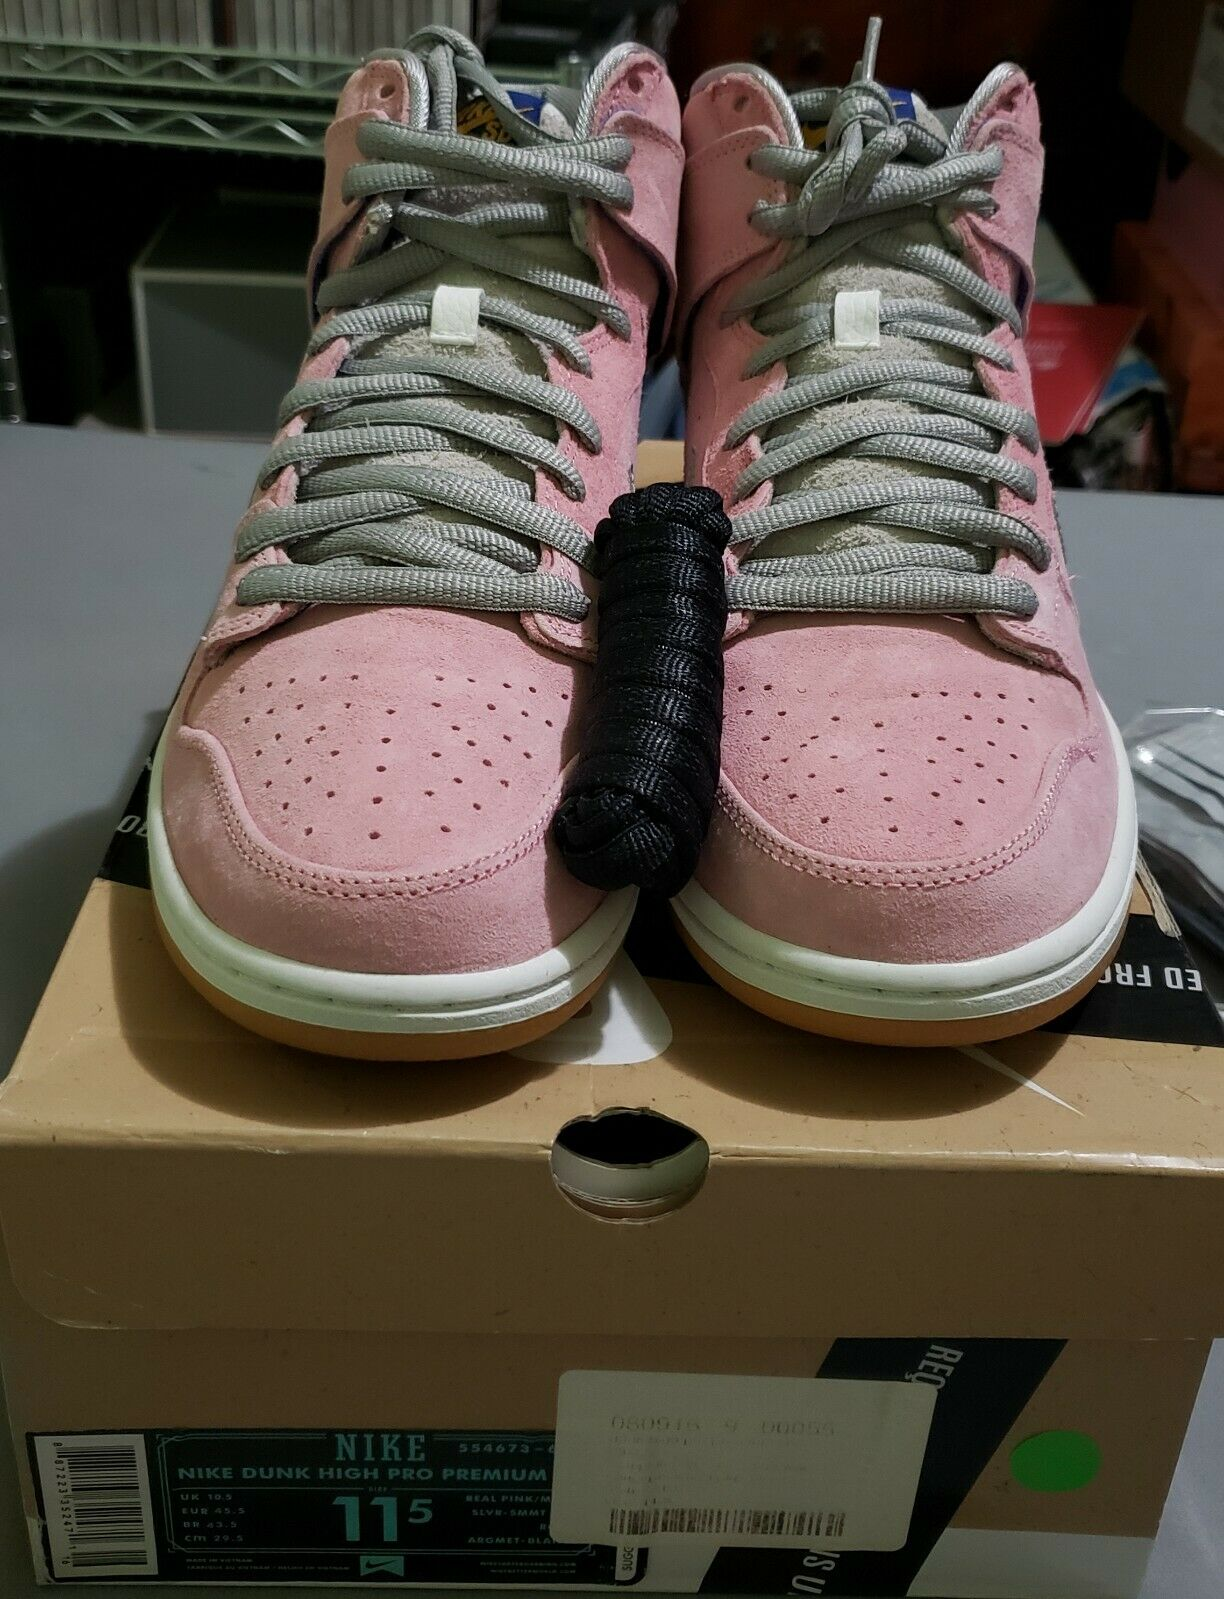 Nike Dunk SB High Concepts When Pigs Fly  Original Cncpts Box NEVER WORN US 11.5